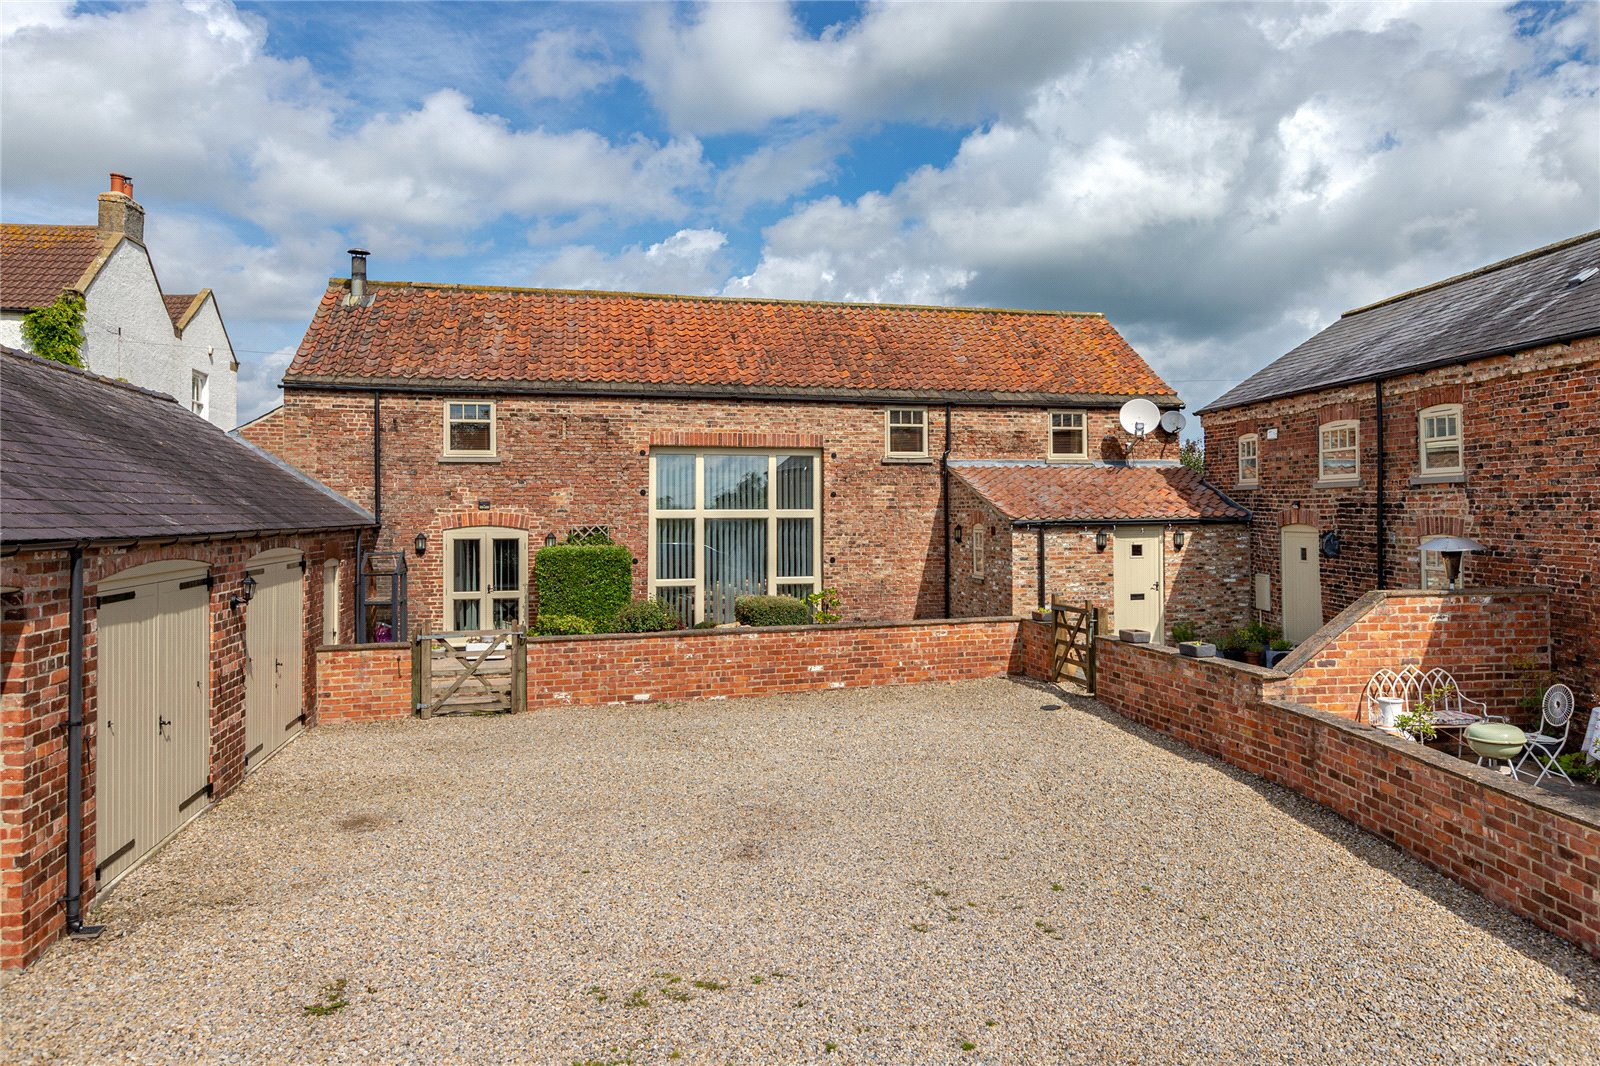 north yorkshire brick renovated barn conversion with courtyard